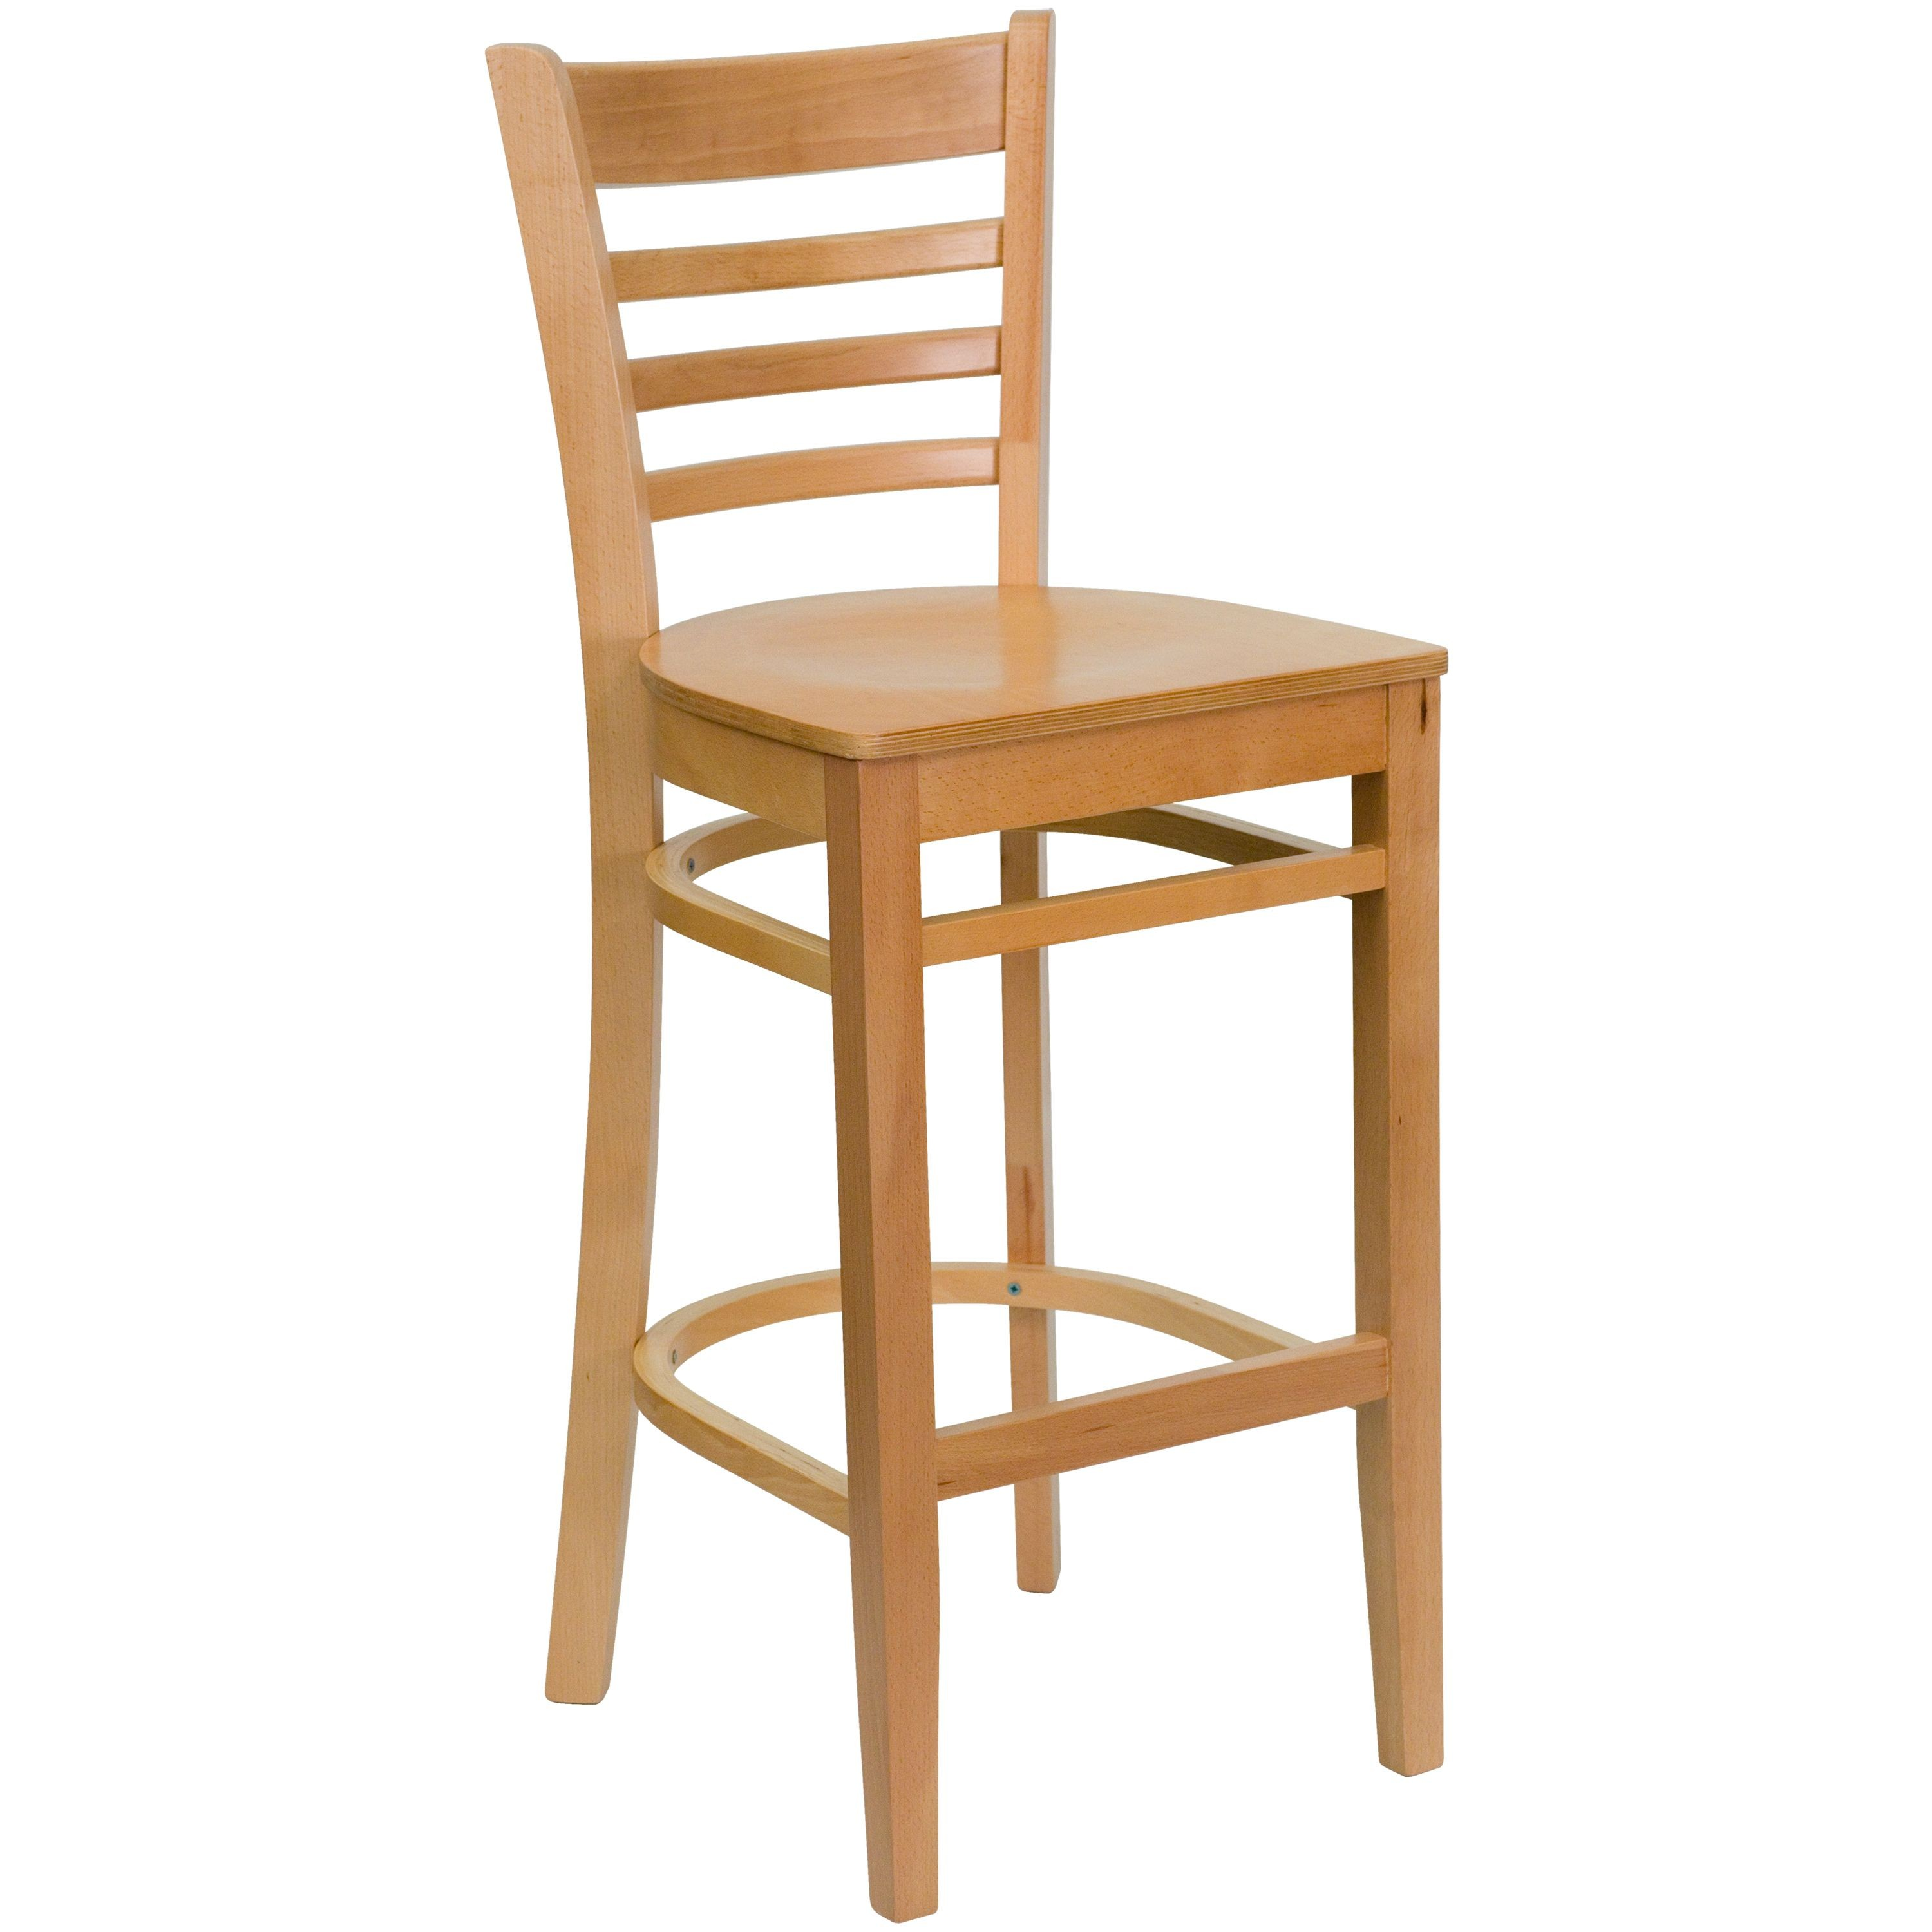 Flash Furniture XU-DGW0005BARLAD-NAT-GG Ladder Back Wood Bar Stool with Natural Finish